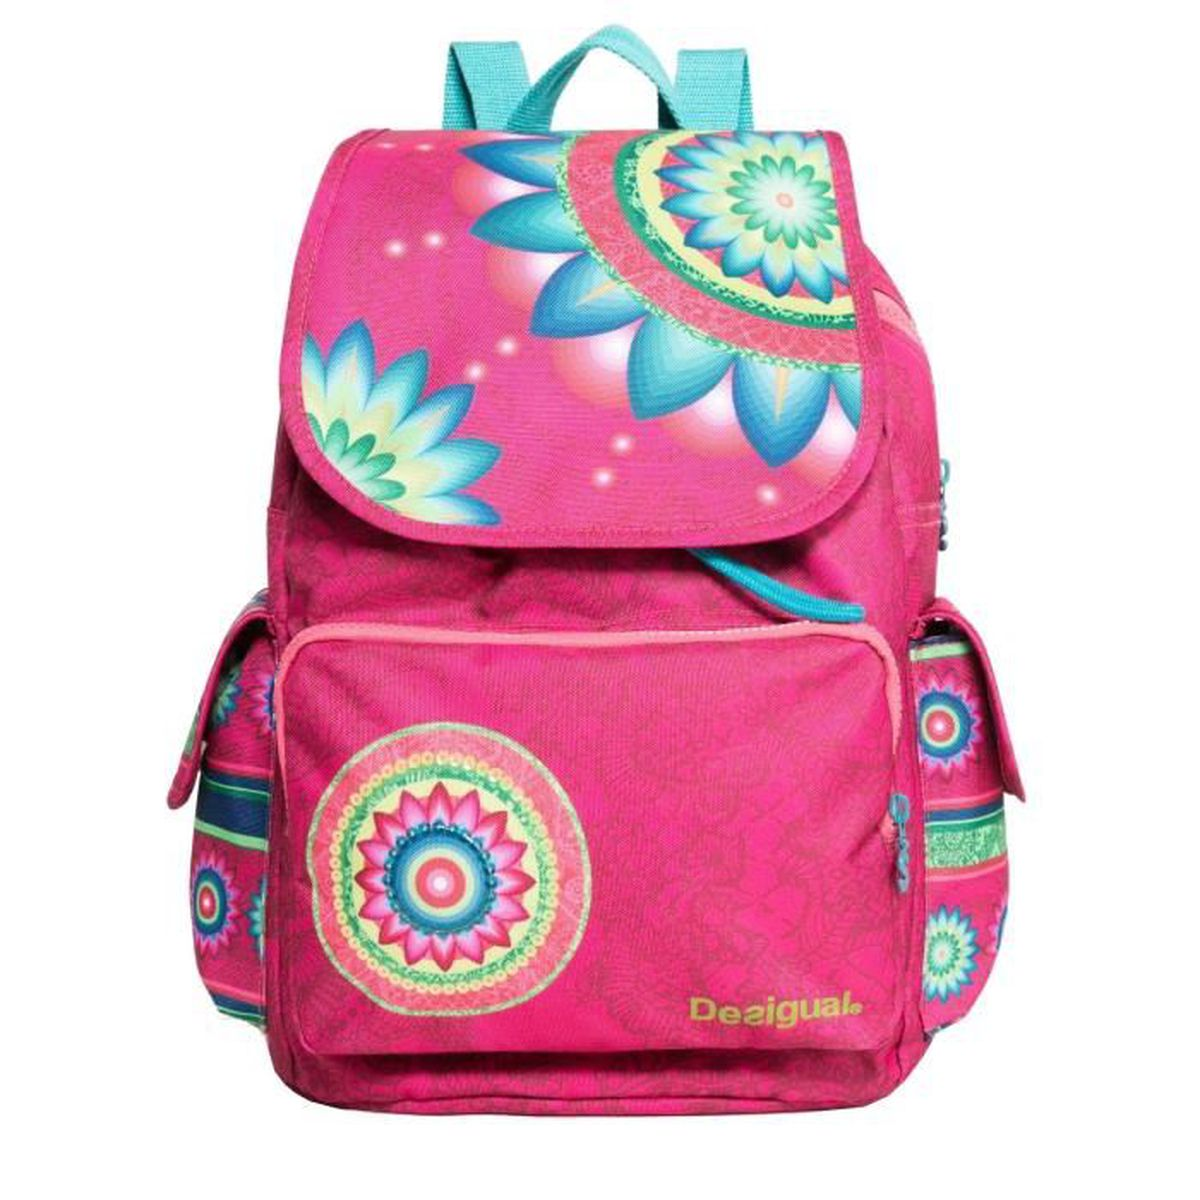 sac dos desigual mochila pomelo 67x31f8 3022 rose rose achat vente sac dos 2009827764995. Black Bedroom Furniture Sets. Home Design Ideas